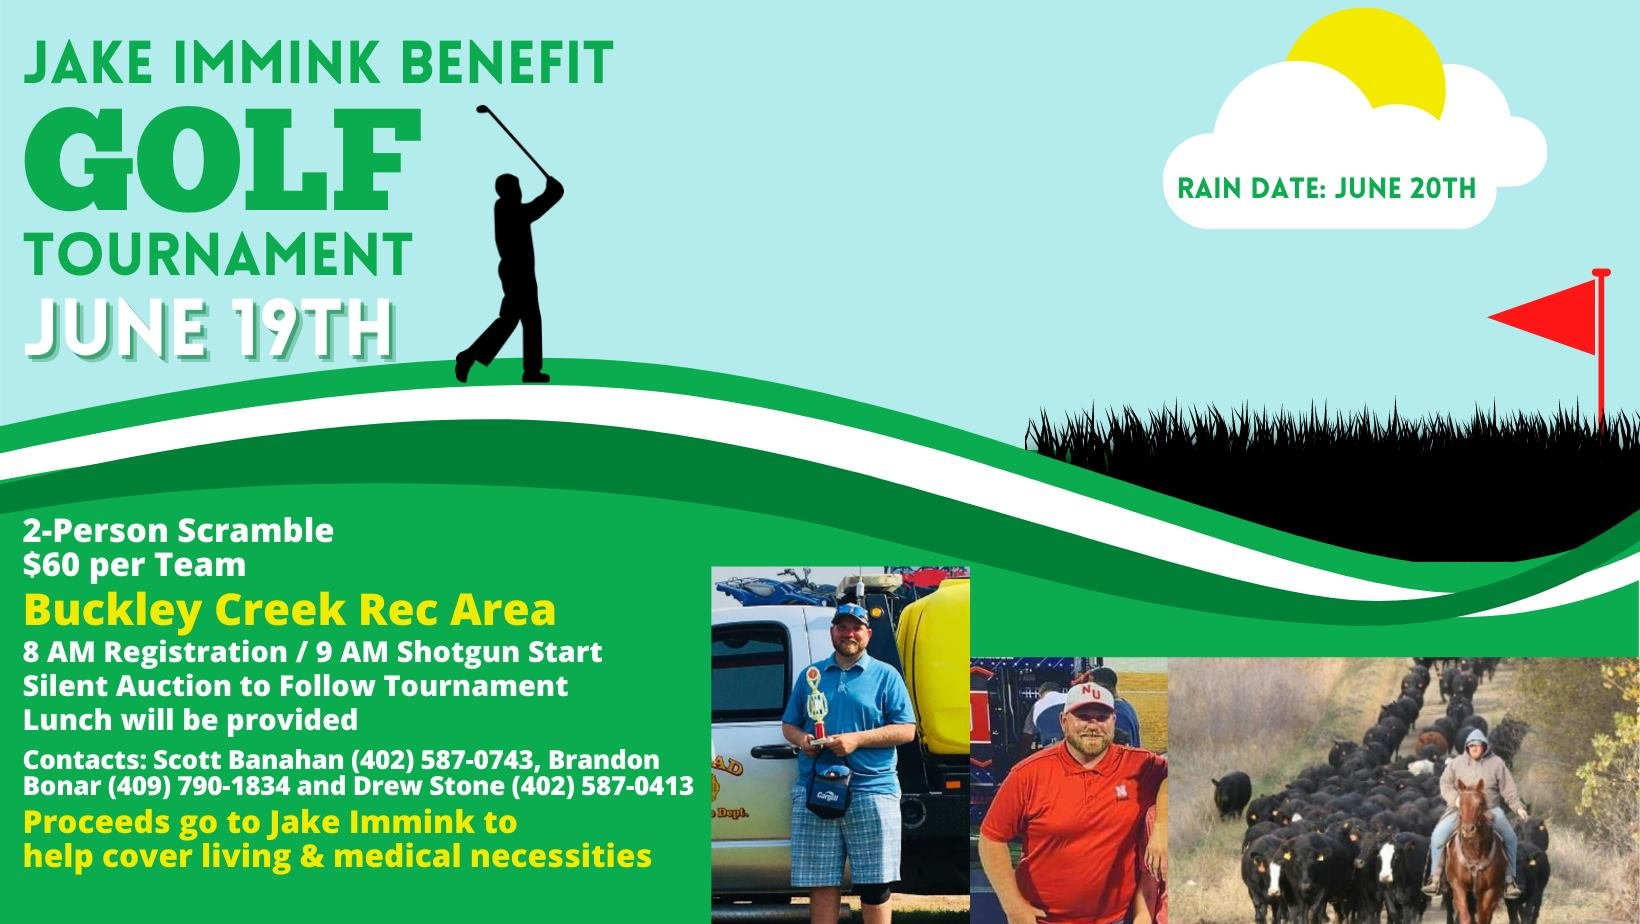 Golf Fundraiser for Jake Immink to take place on Saturday, June 19